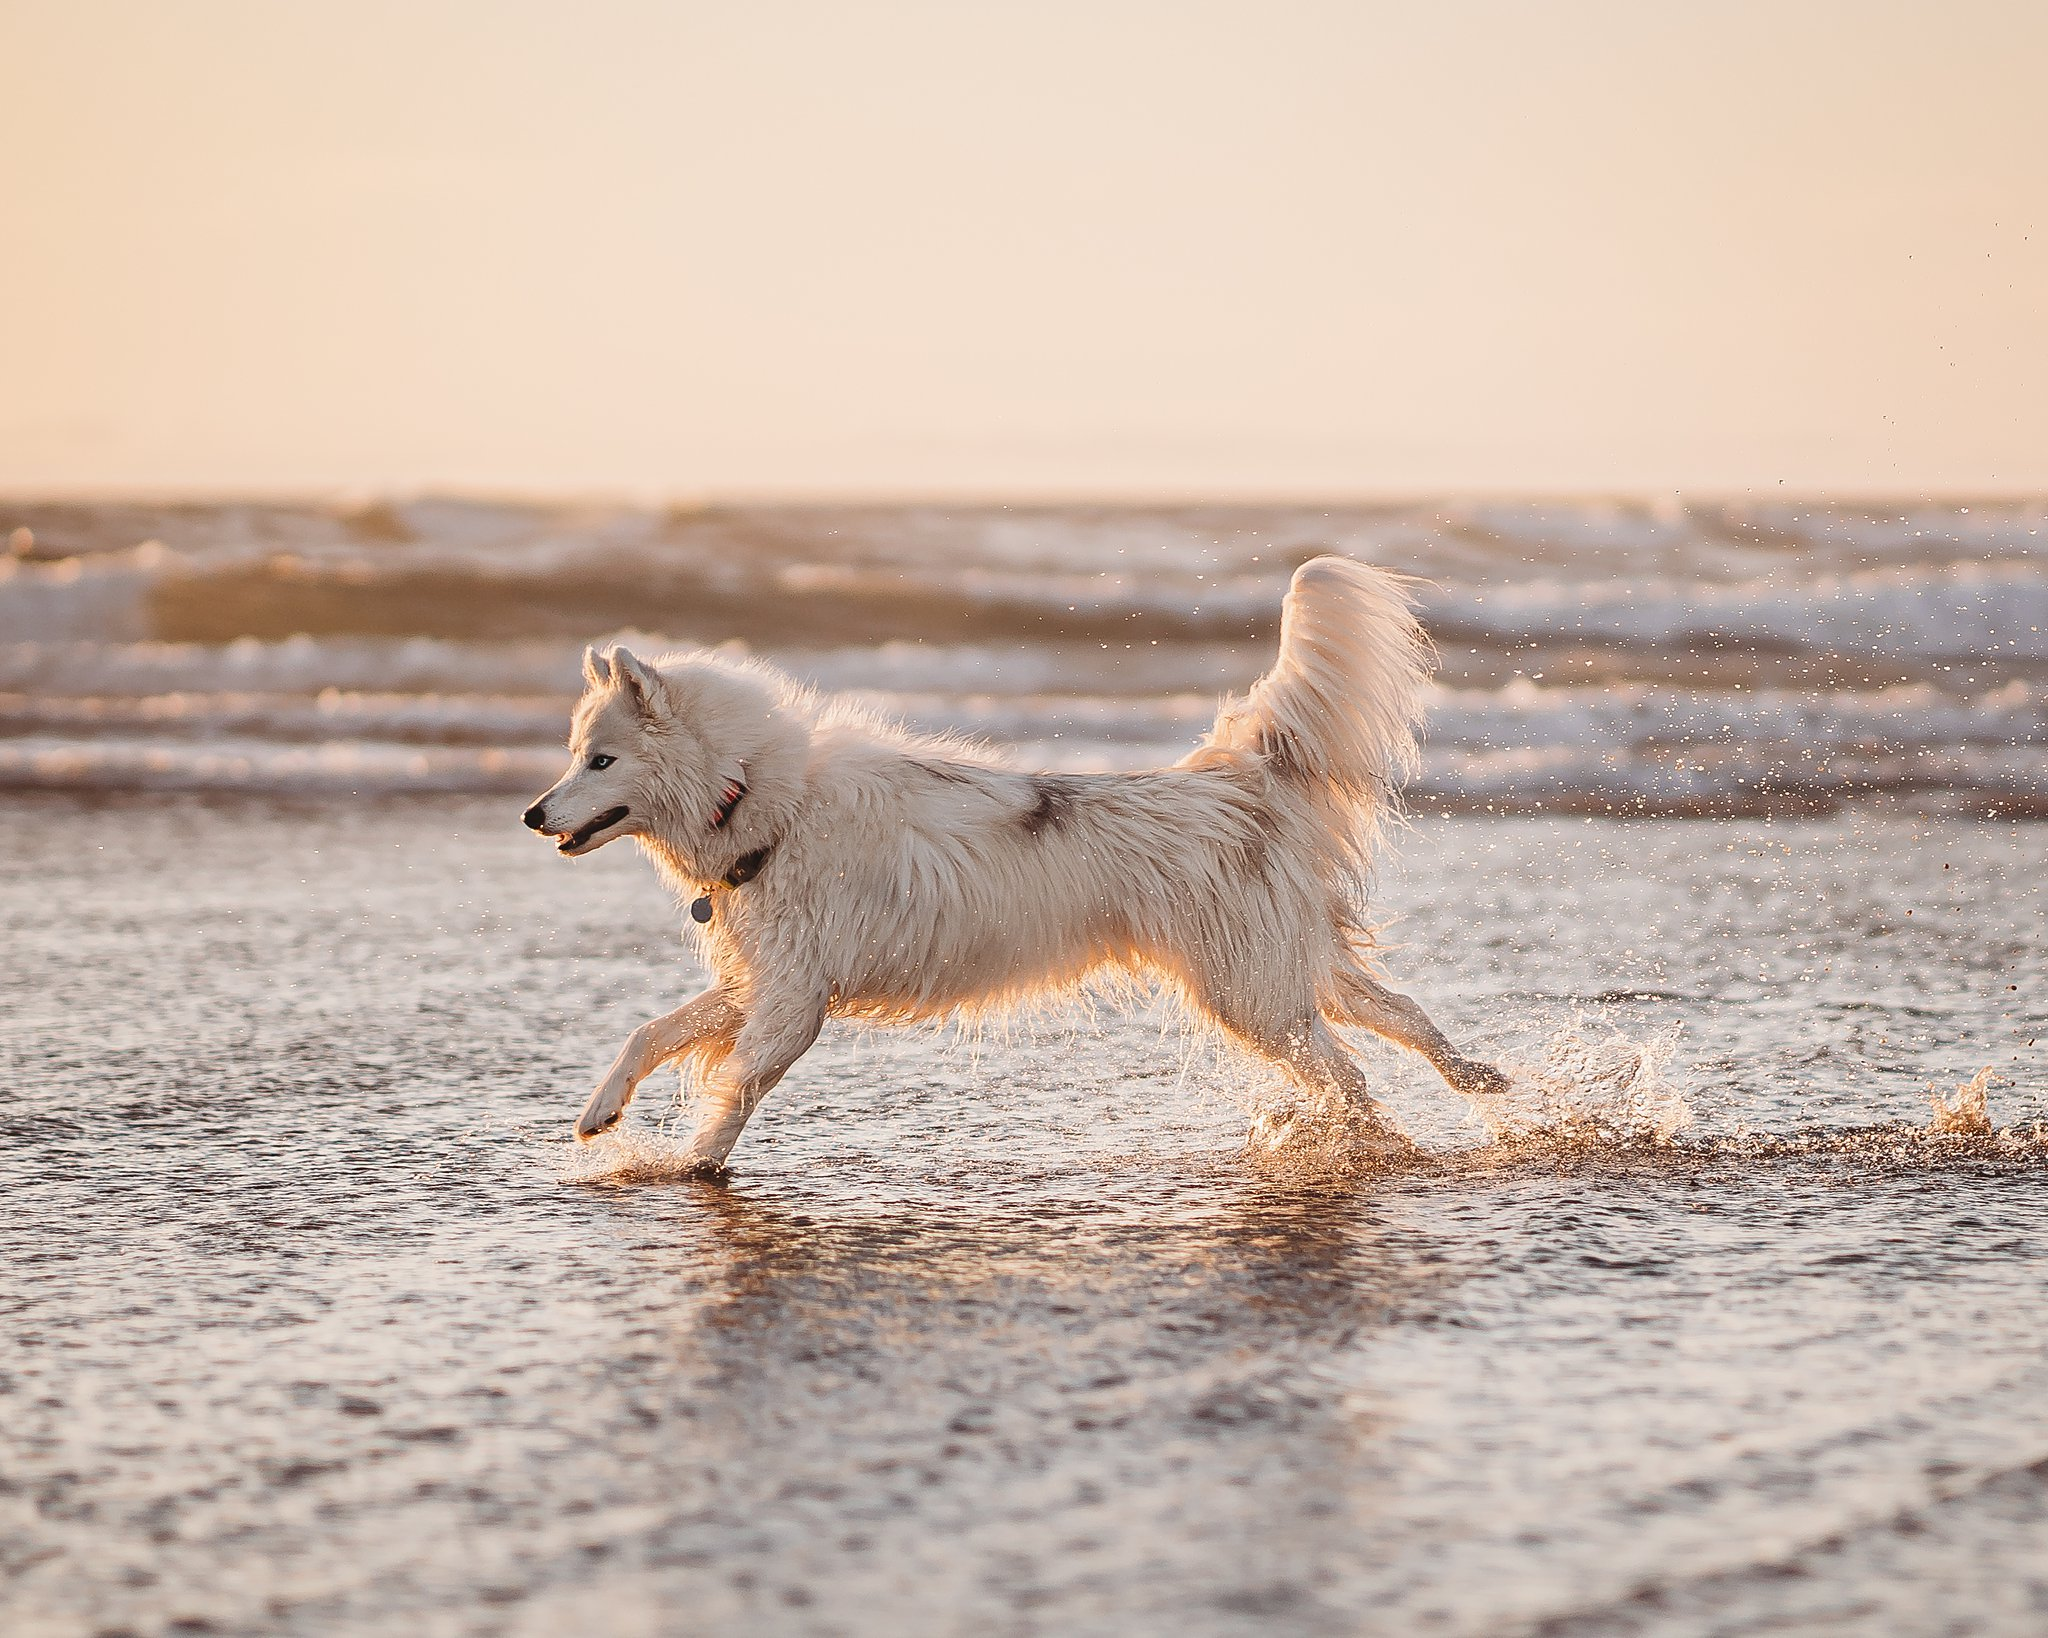 husky running in the water for a dog portrait